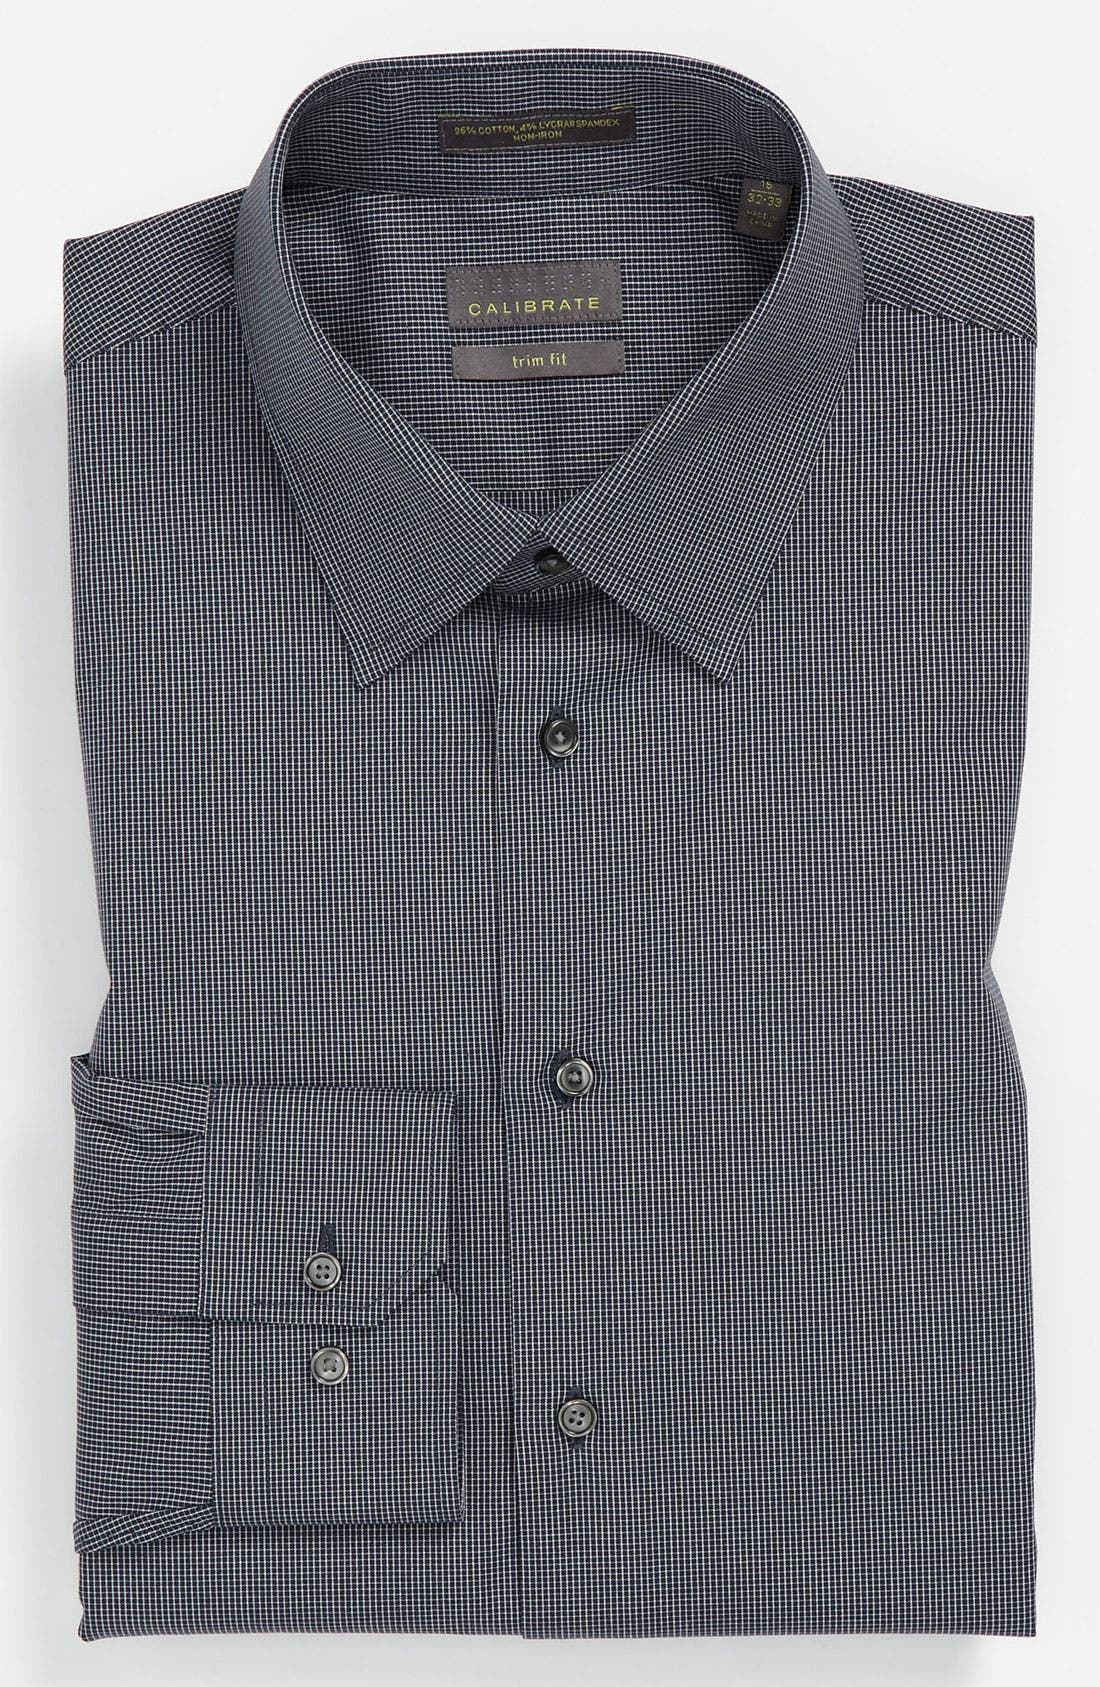 Main Image - Calibrate Trim Fit Non-Iron Dress Shirt